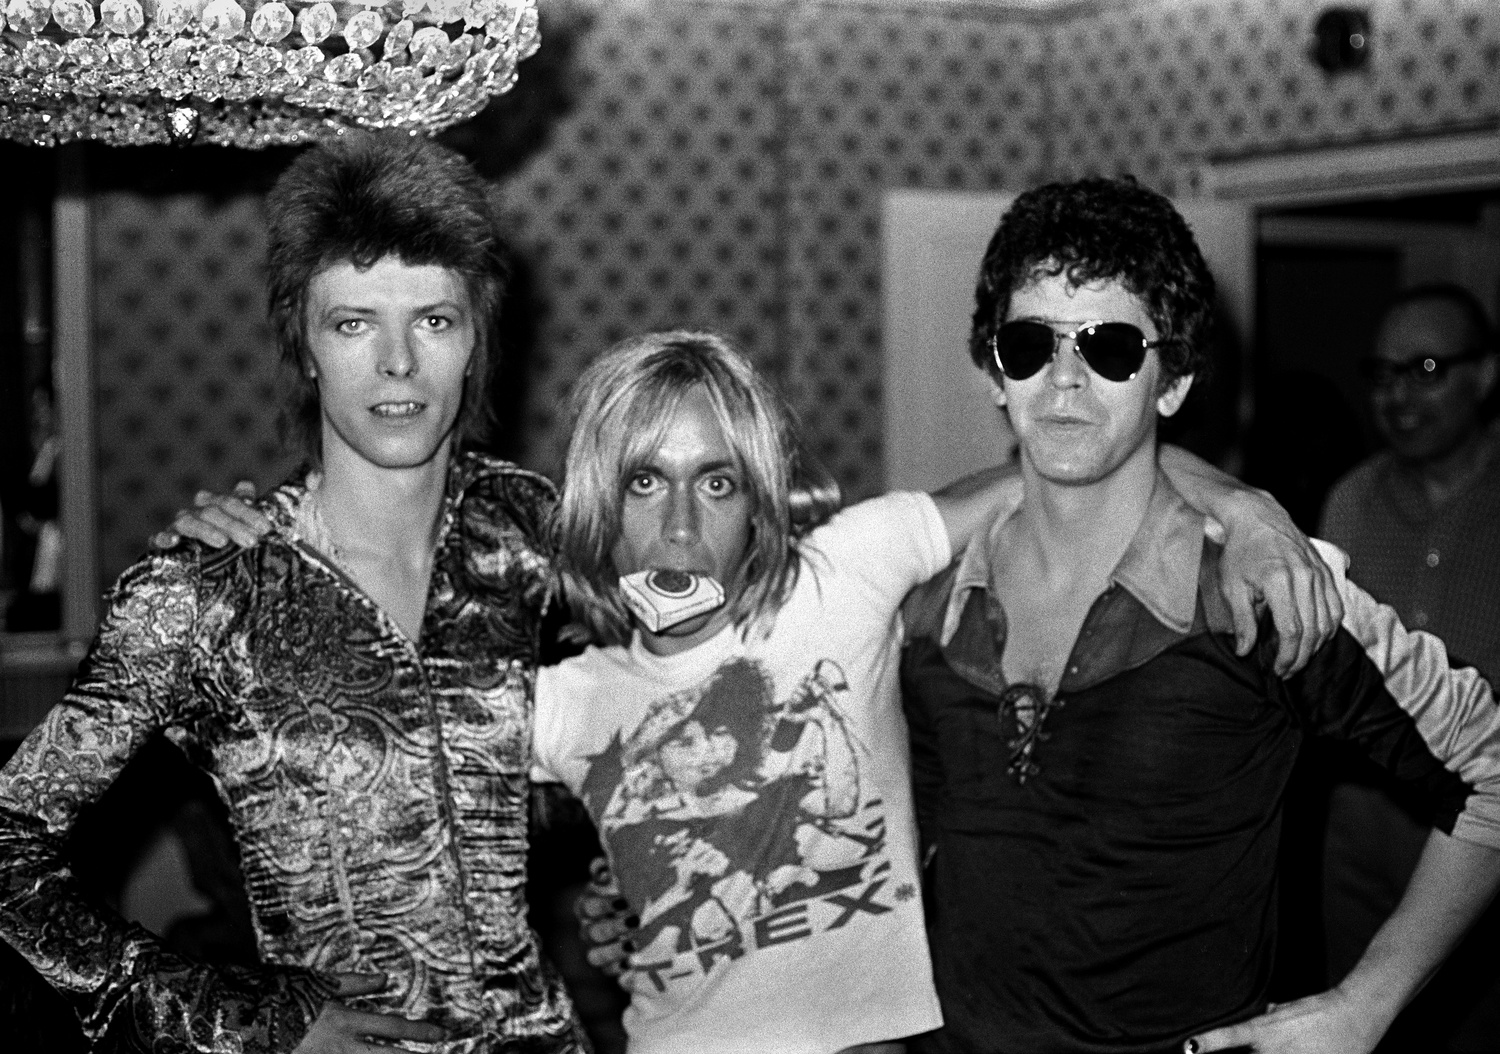 Longstanding rock photographer Mick Rock has shot artists including Lou Reed and David Bowie.